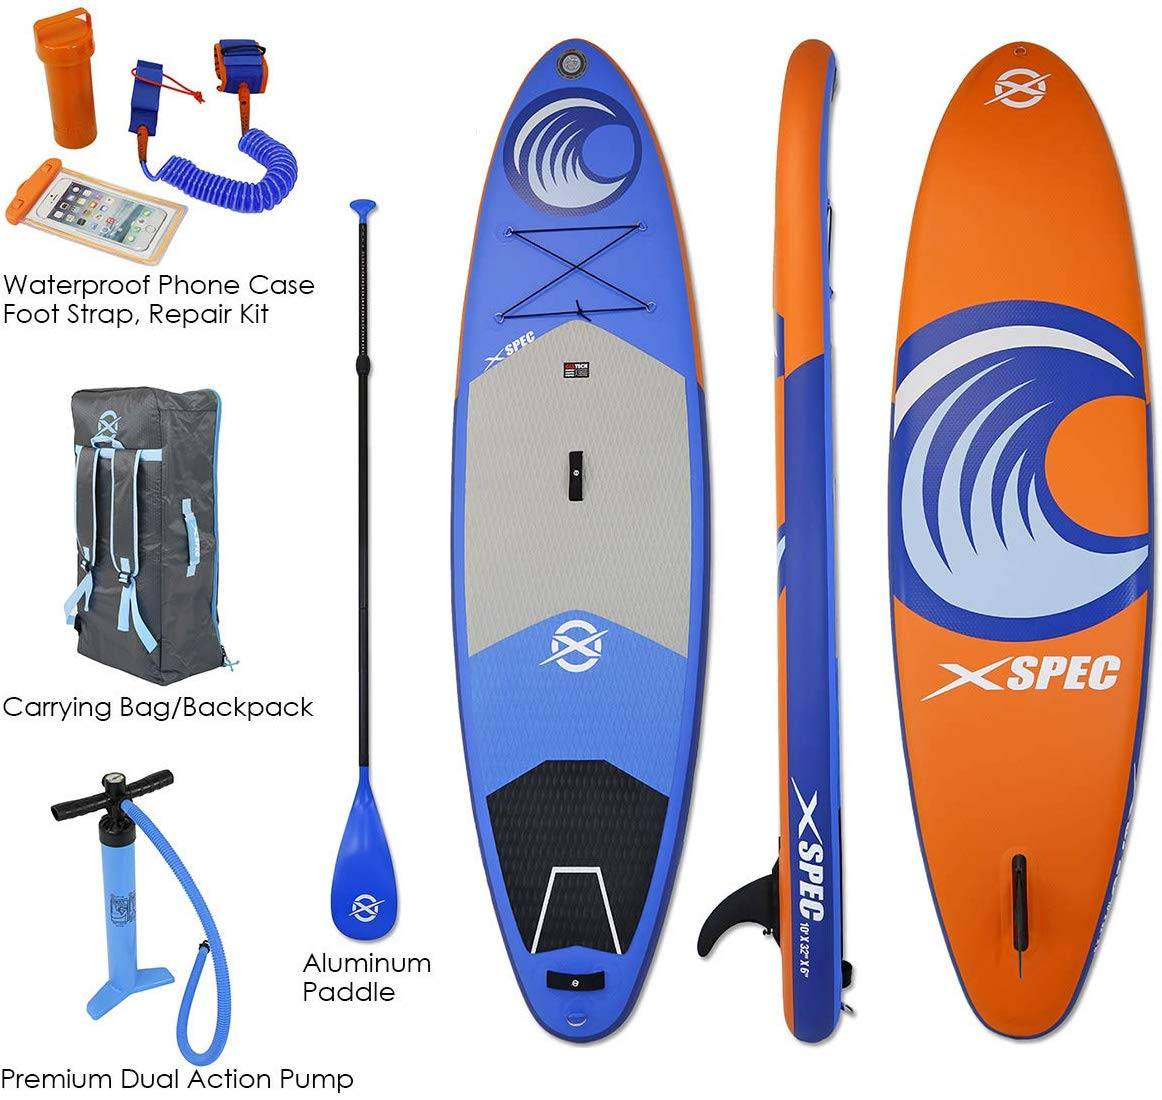 Xspec Inflatable Standup Paddle Board - image Xspec-Inflatable-Standup-Paddle-Board on https://supboardgear.com